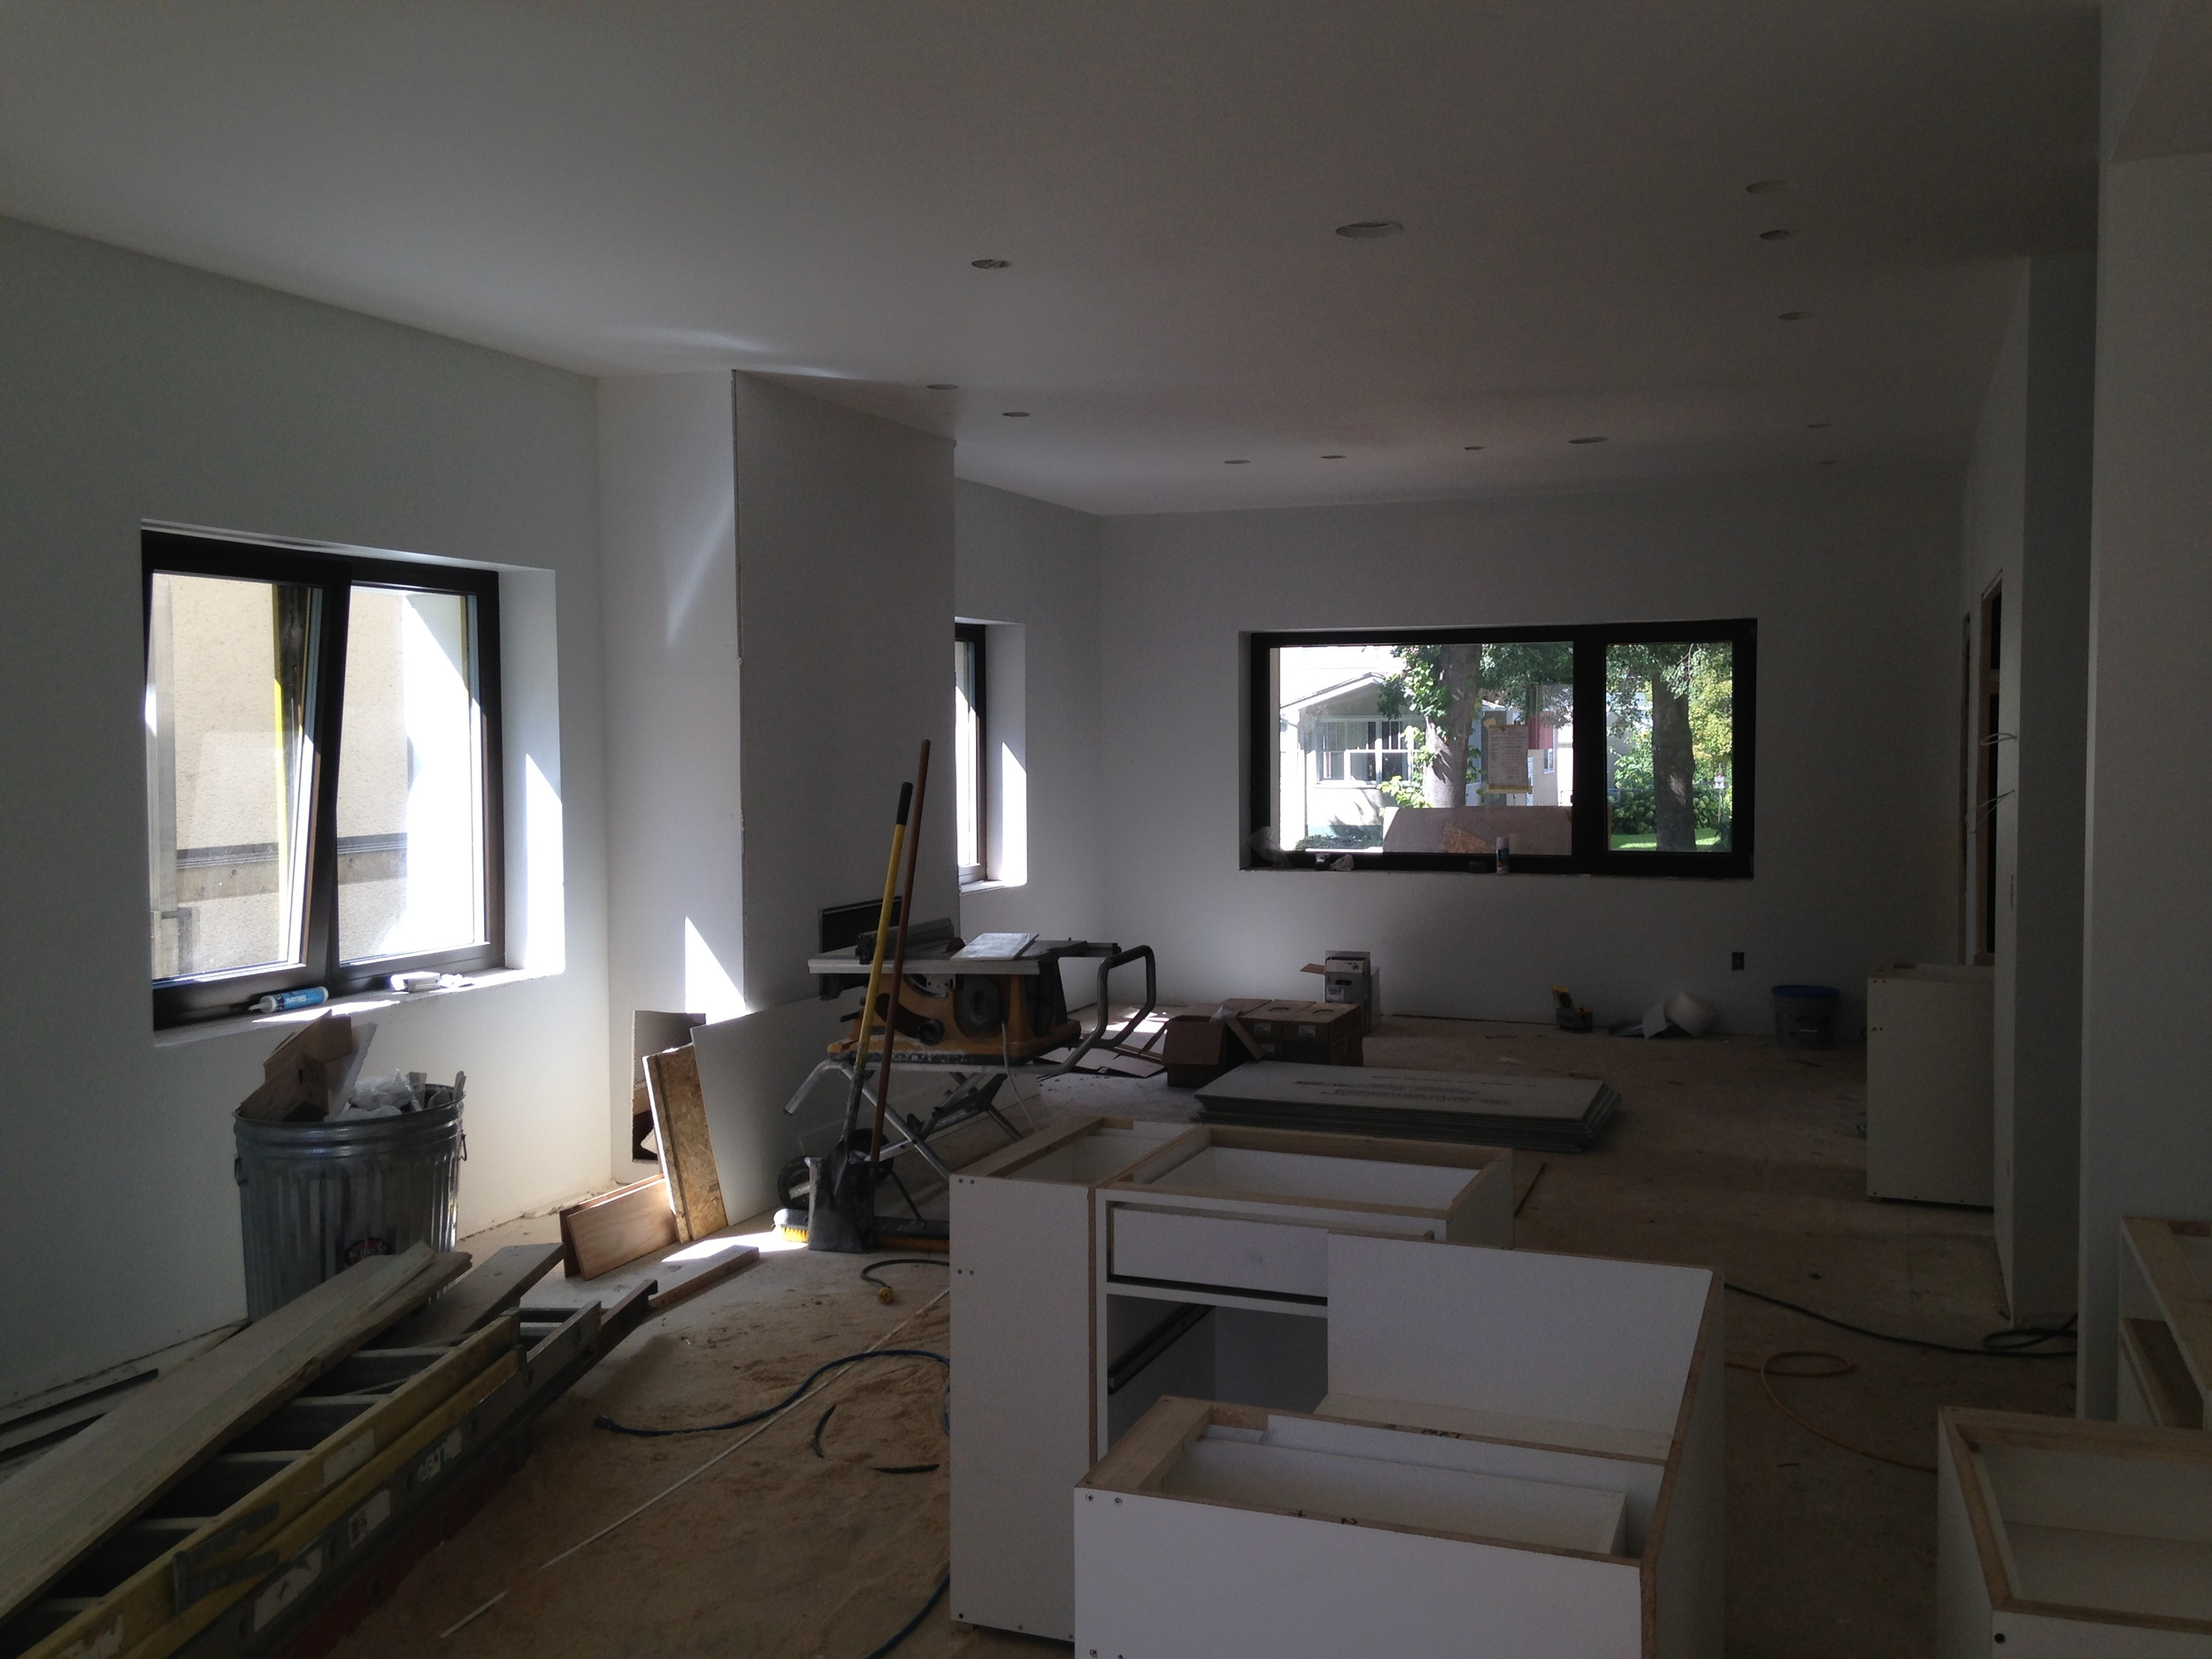 Looking toward the dining and living areas of main room with fireplace